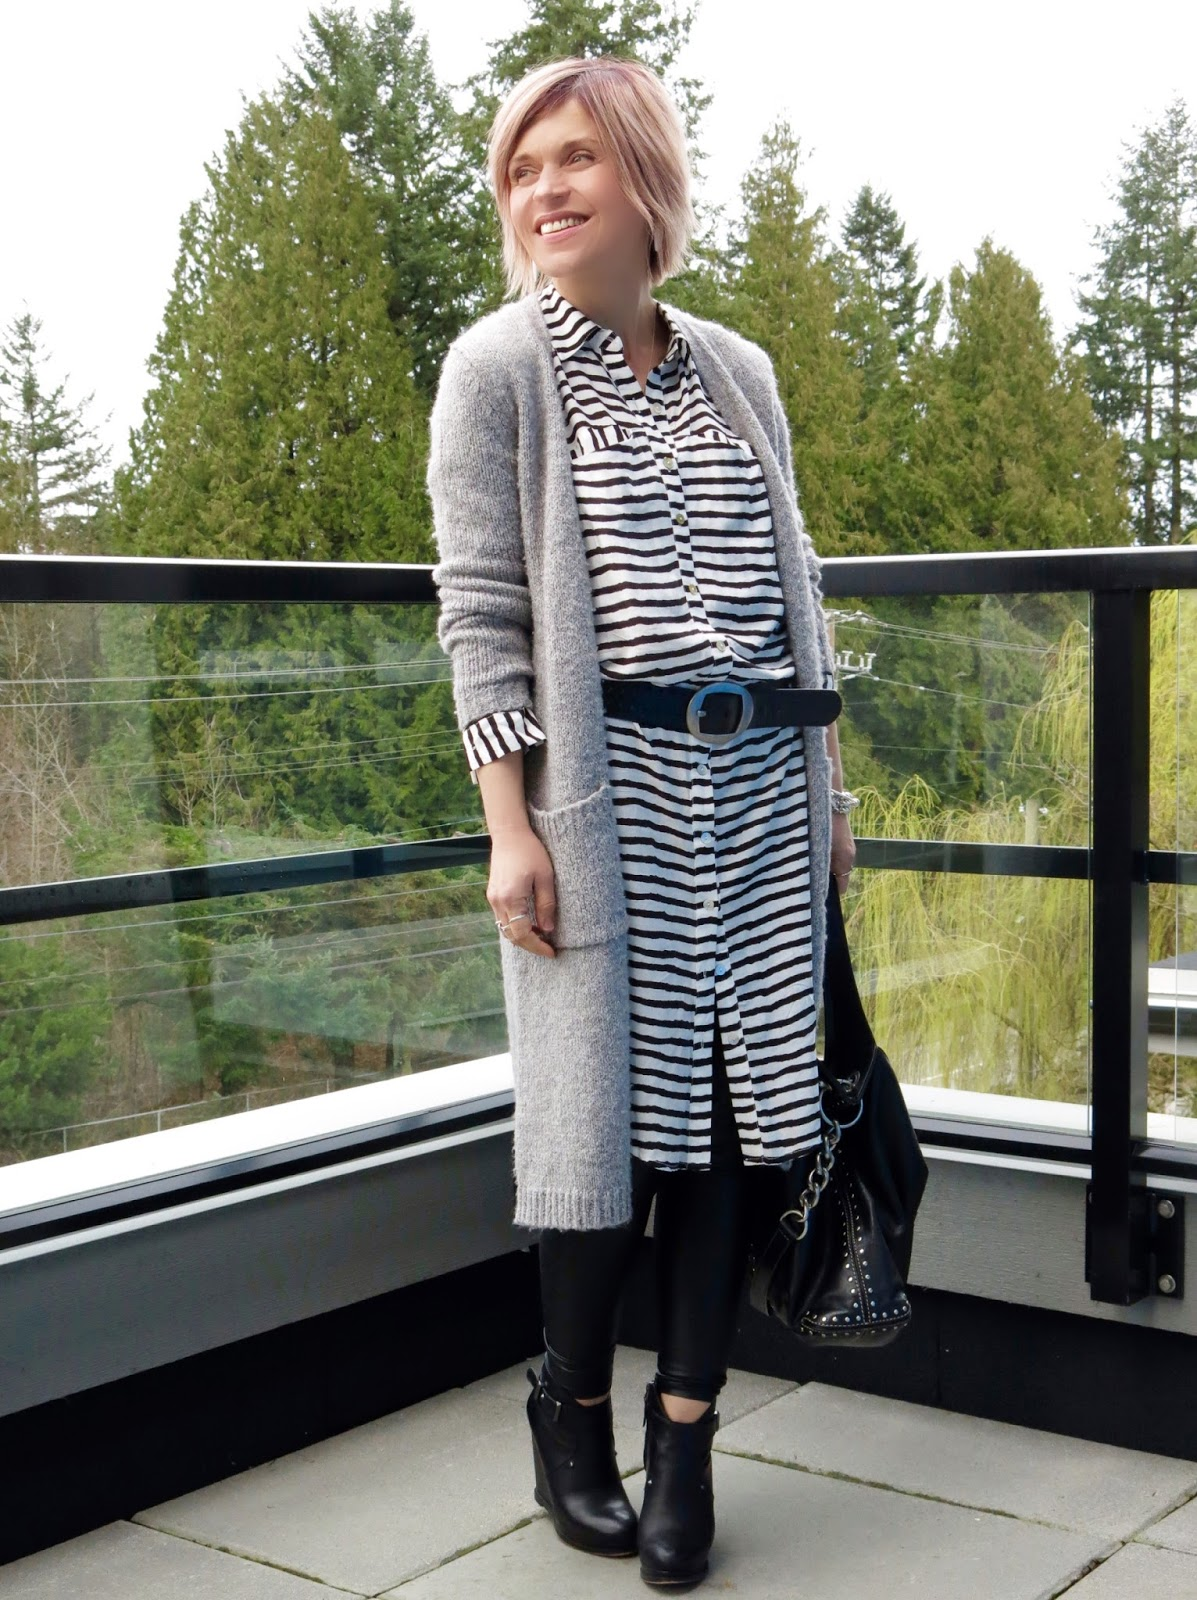 styling a striped shirtdress with faux-leather leggings, wedge booties, a belt, and long cardigan